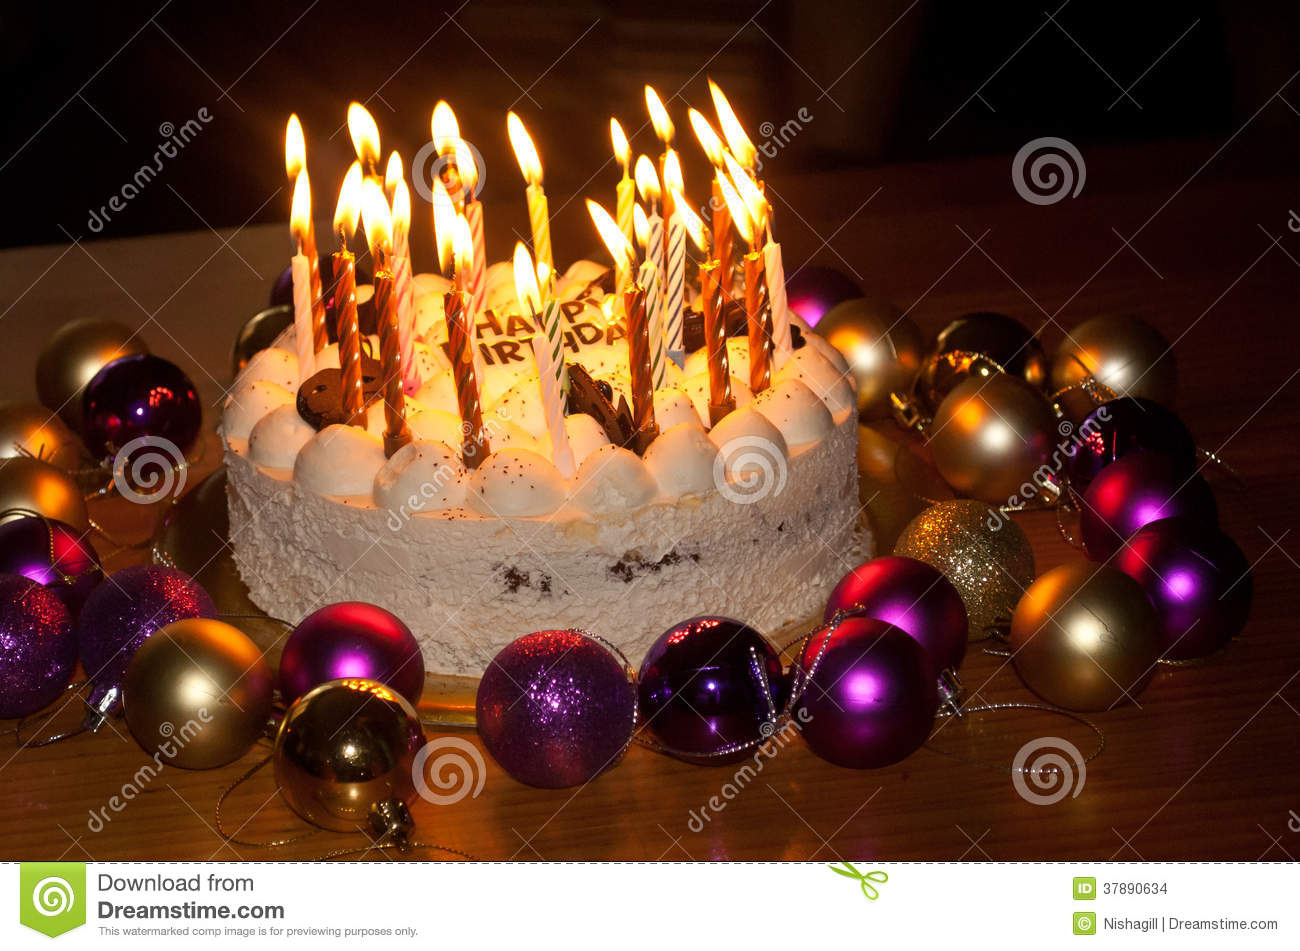 Birthday Cakes With Candles Birthday Cake With Burning Candles Stock Photo Image Of Party